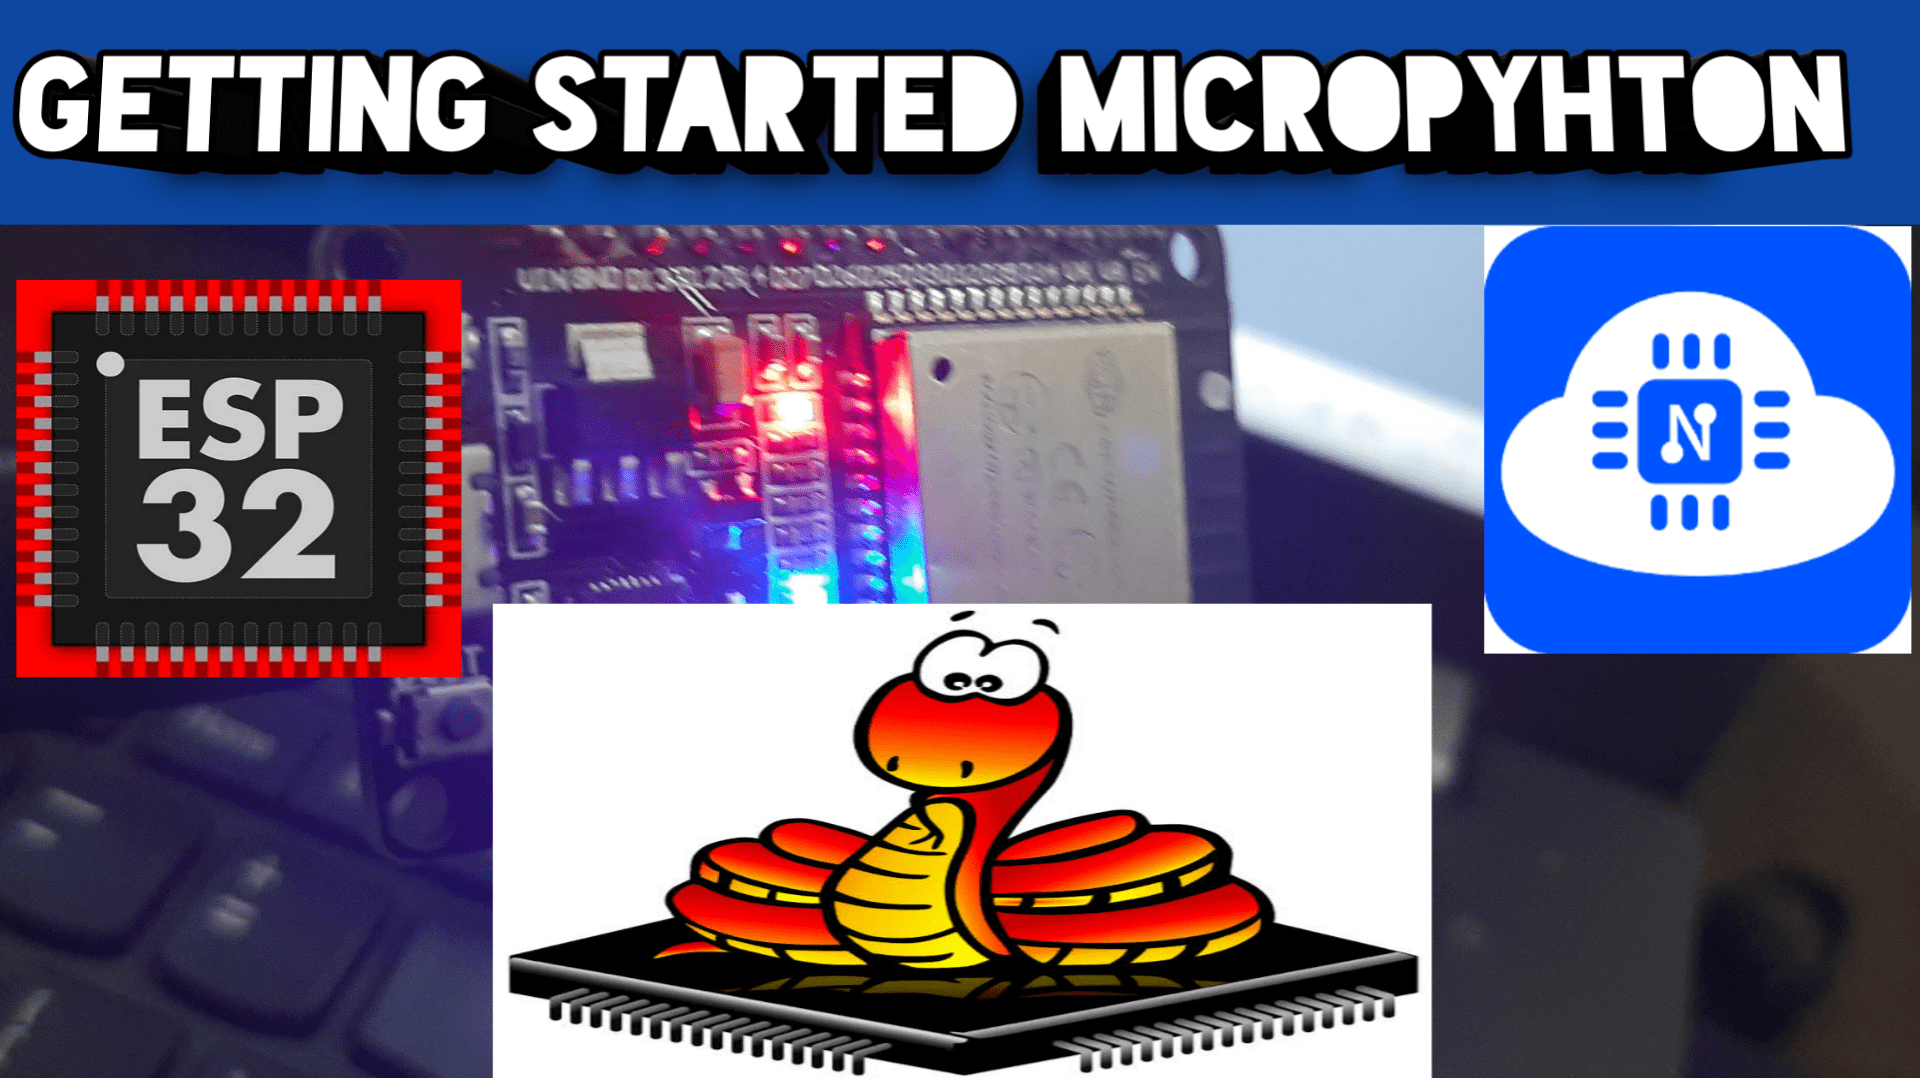 MicroPythoon with ESP32 and ESP8266